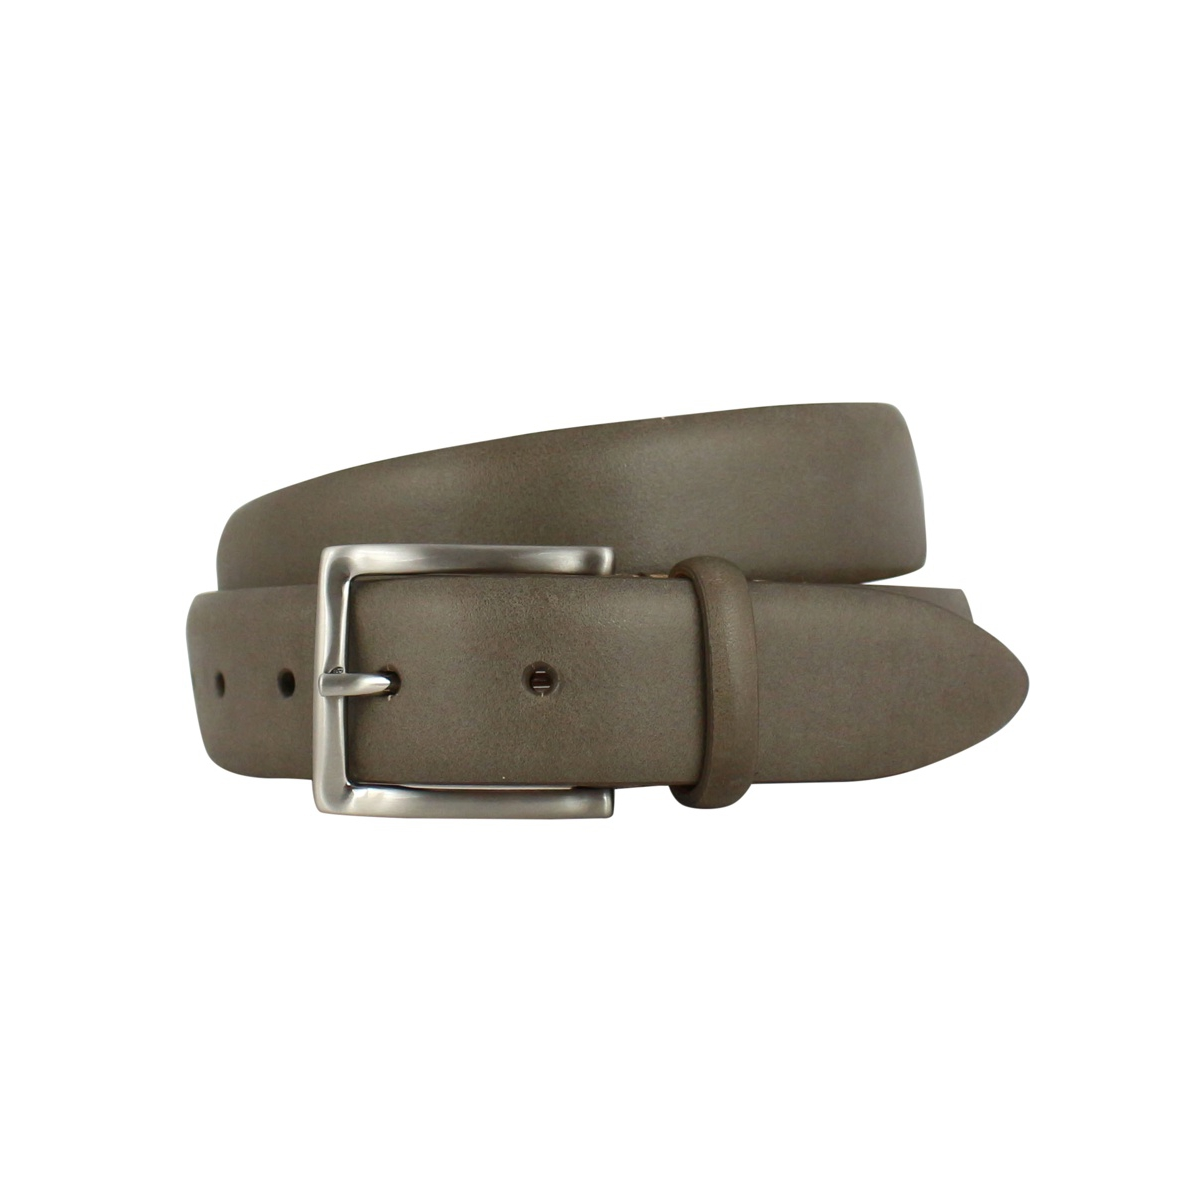 Leather belt H 35 Mud SERGIO GAVAZZENI